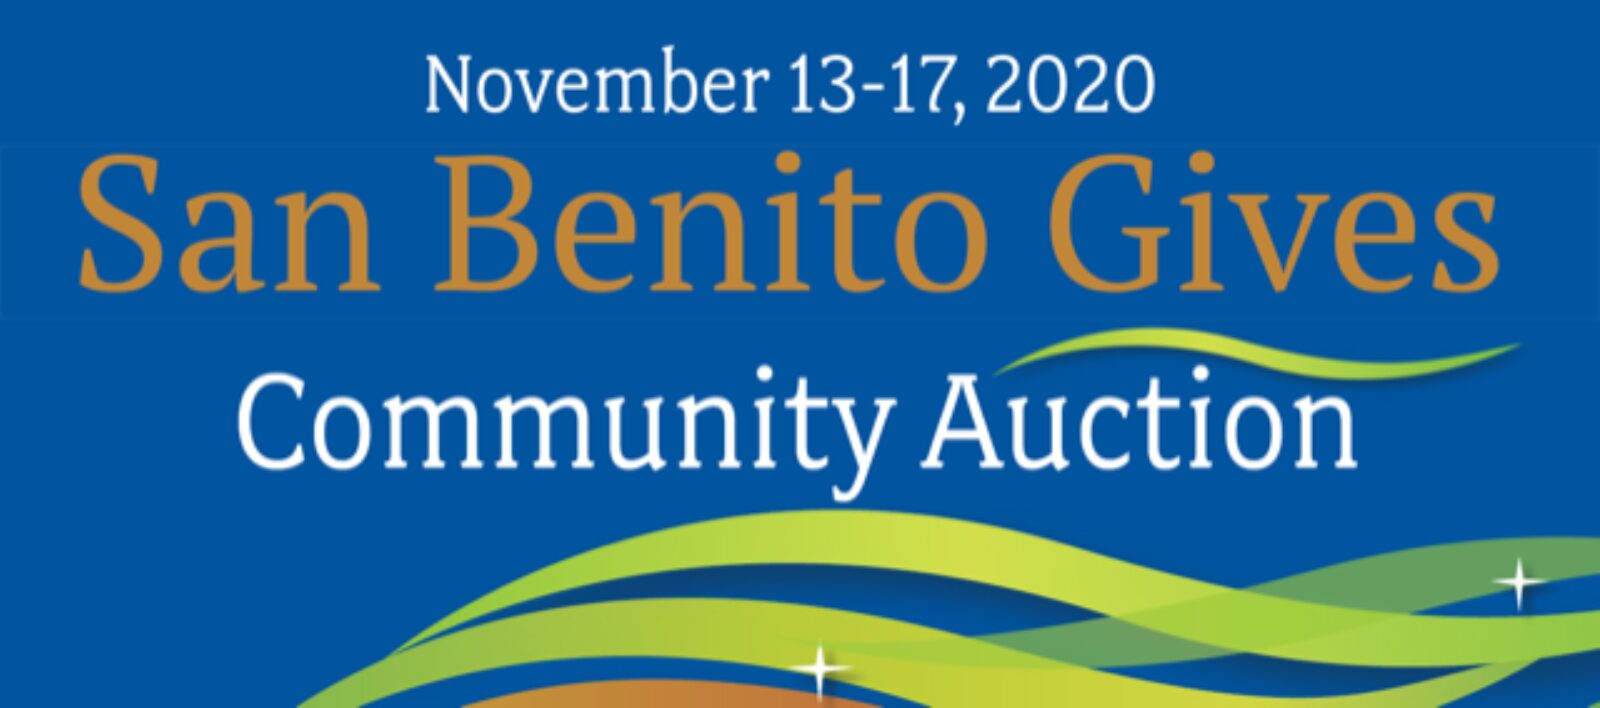 San Benito Gives Community Auction Goes Online